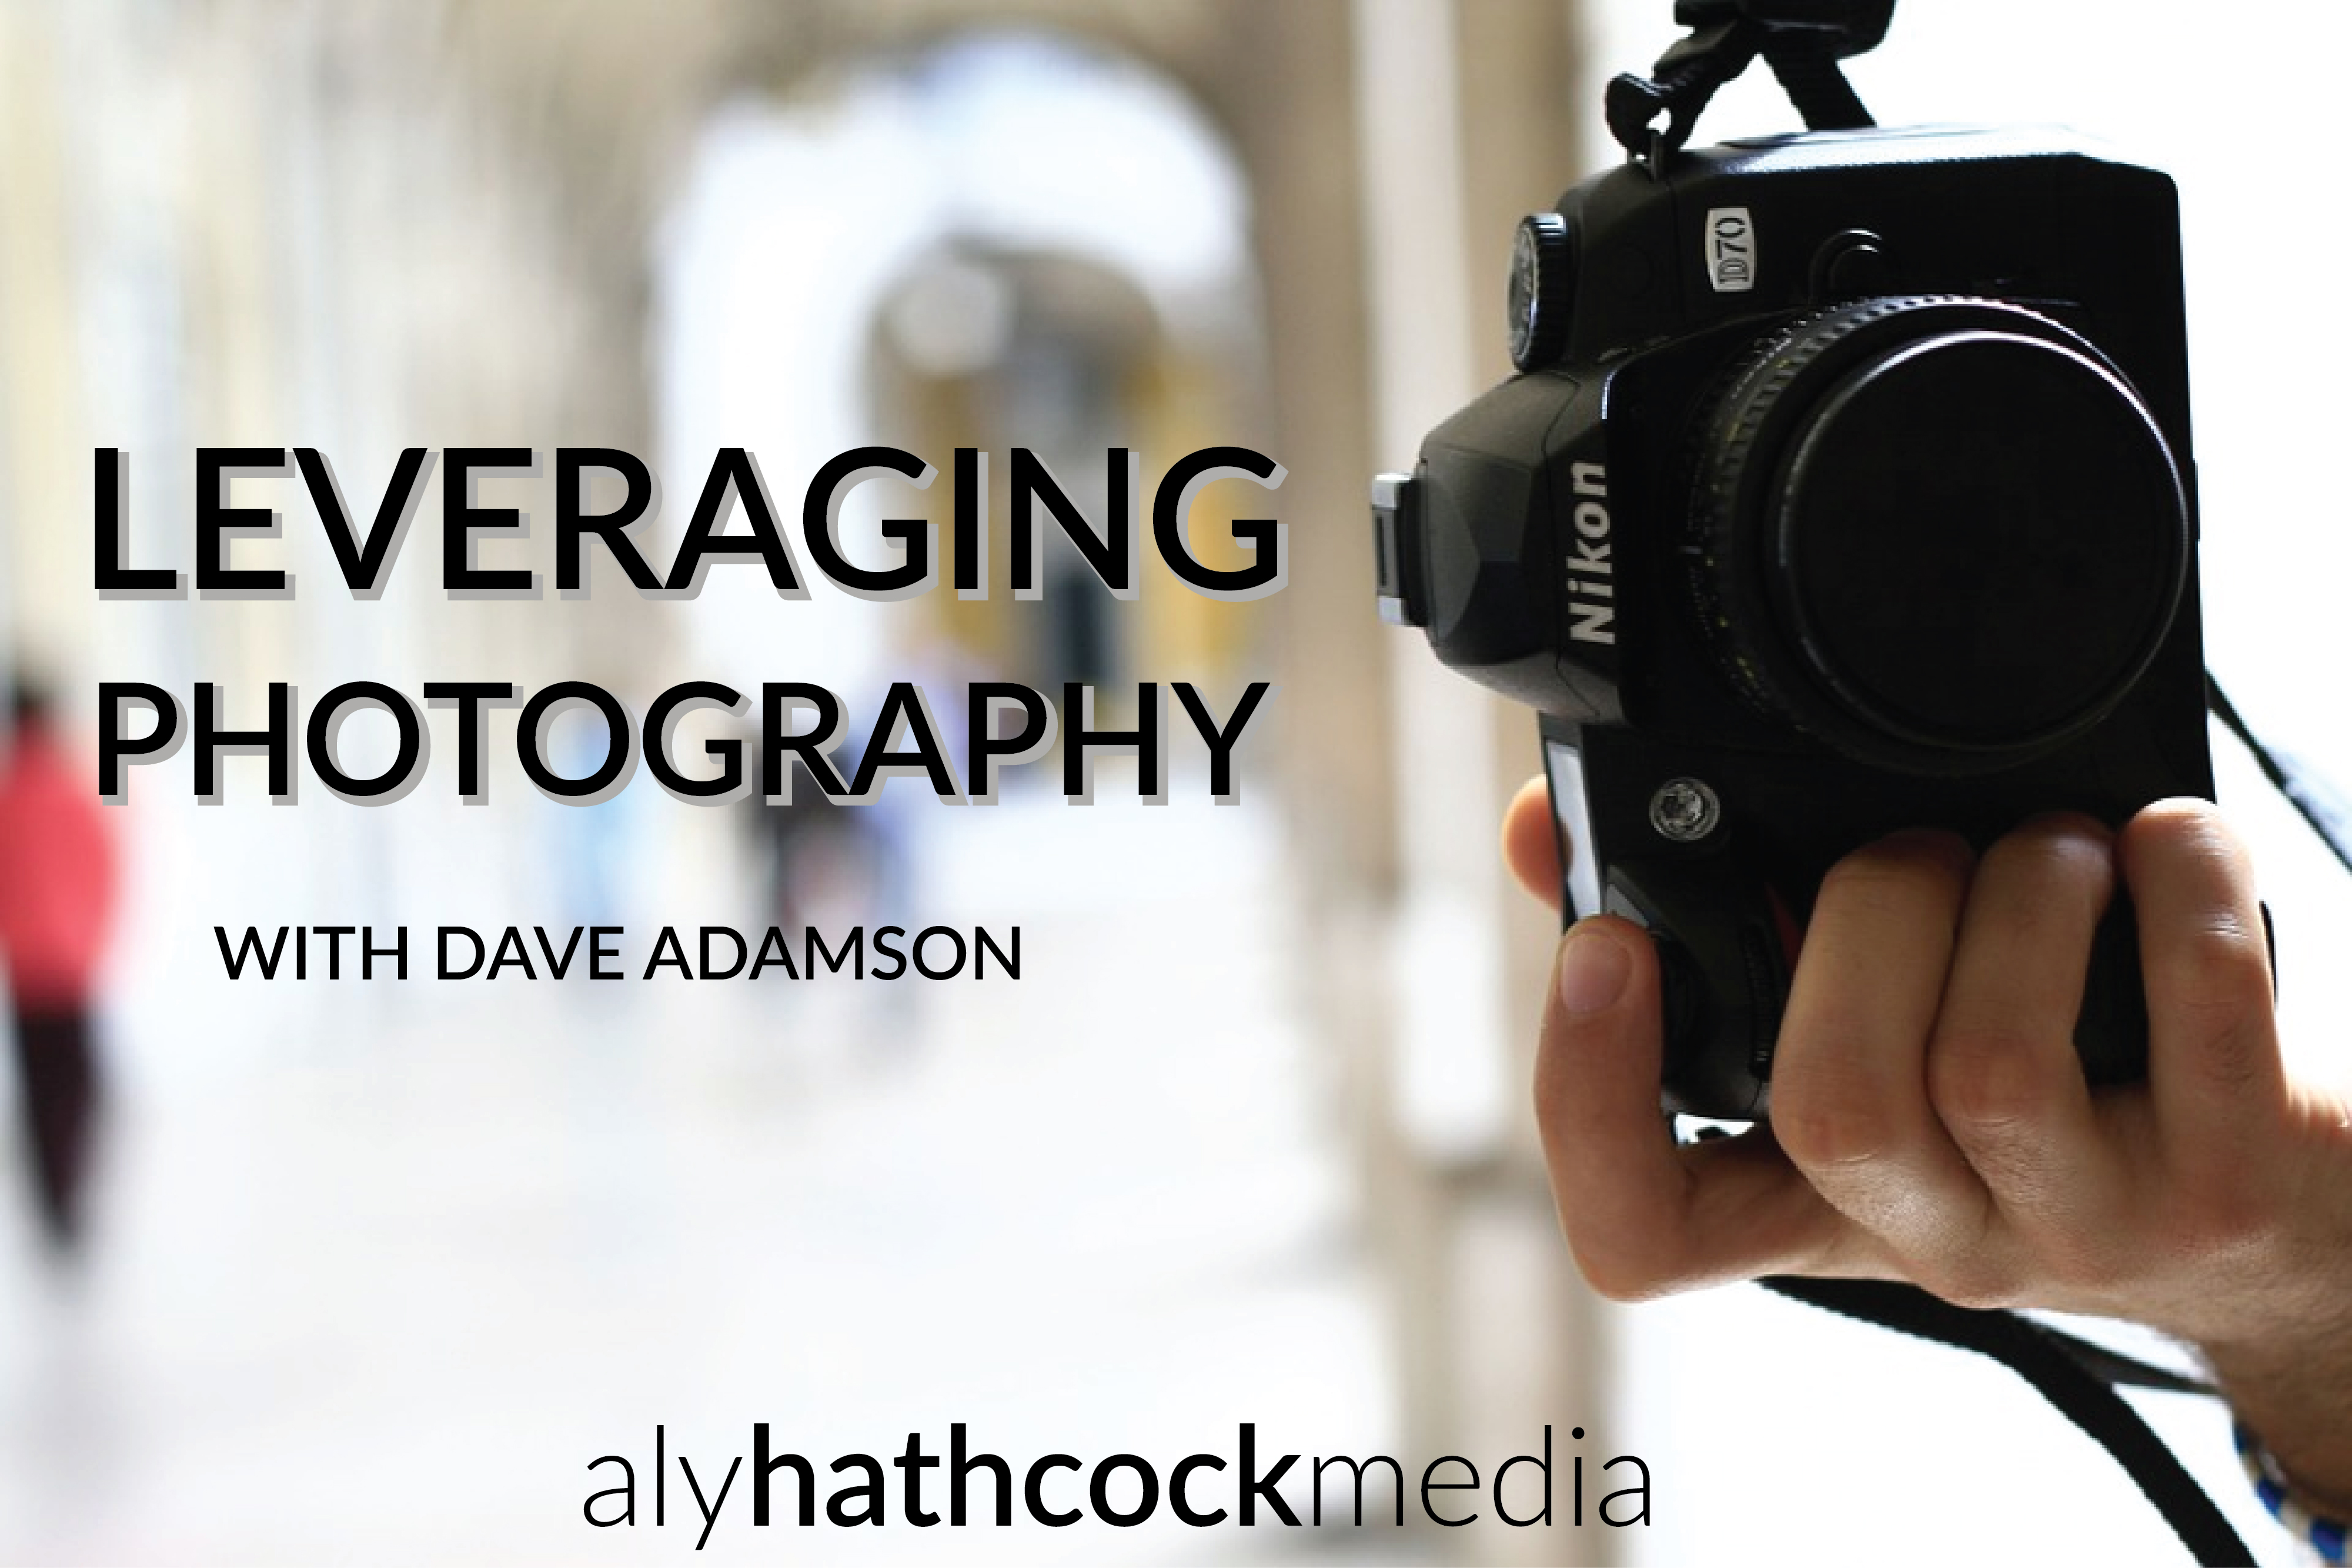 leveraging-photography